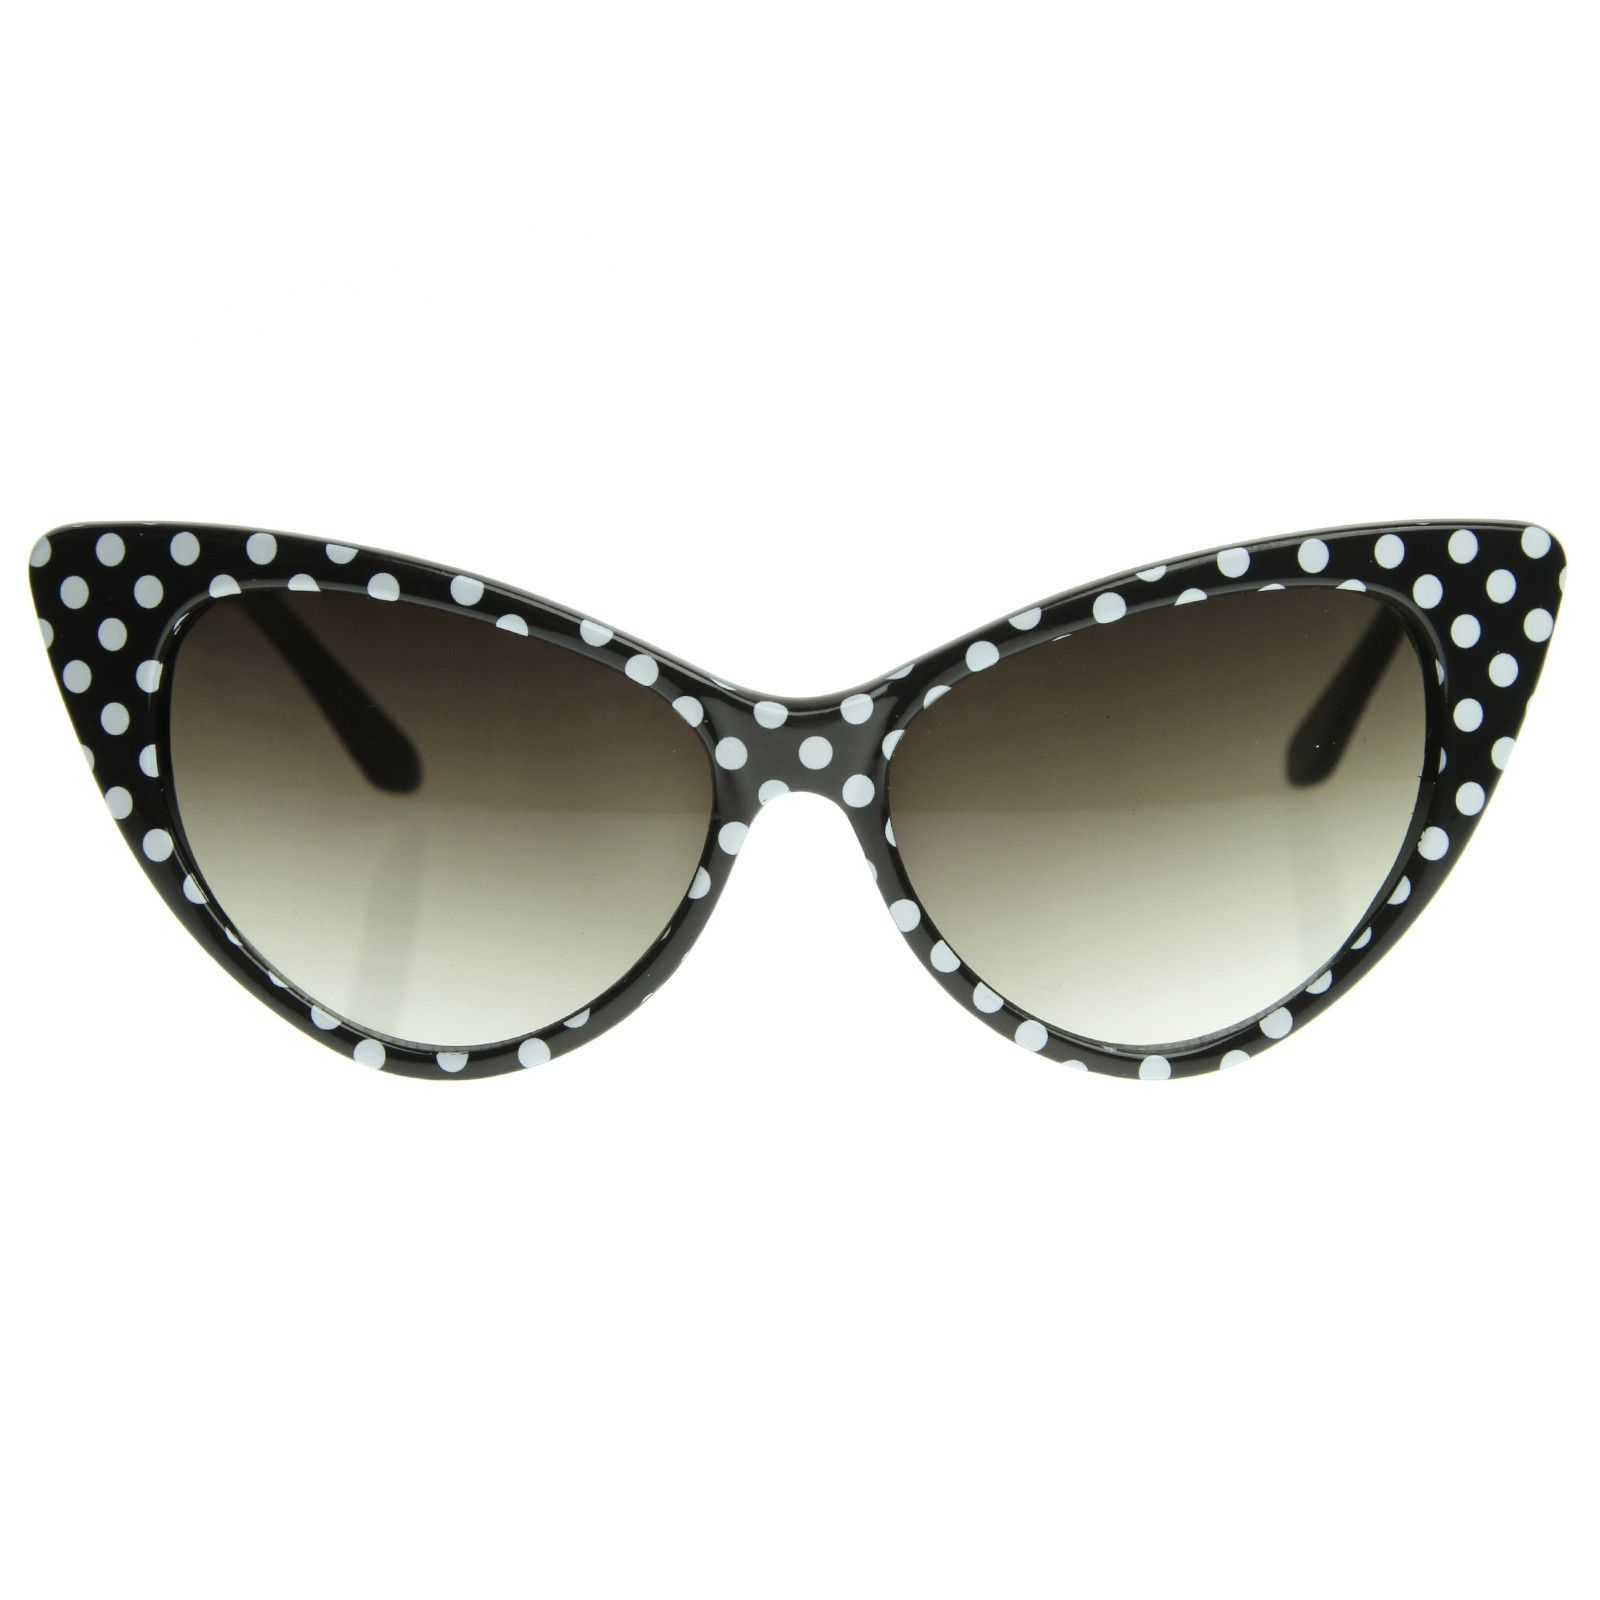 c46d2977b2c Retro 1950 s Polka Dot Cat Eye Fashion Sunglasses 8498 from zeroUV --  pleaseeee I ant ♥♥